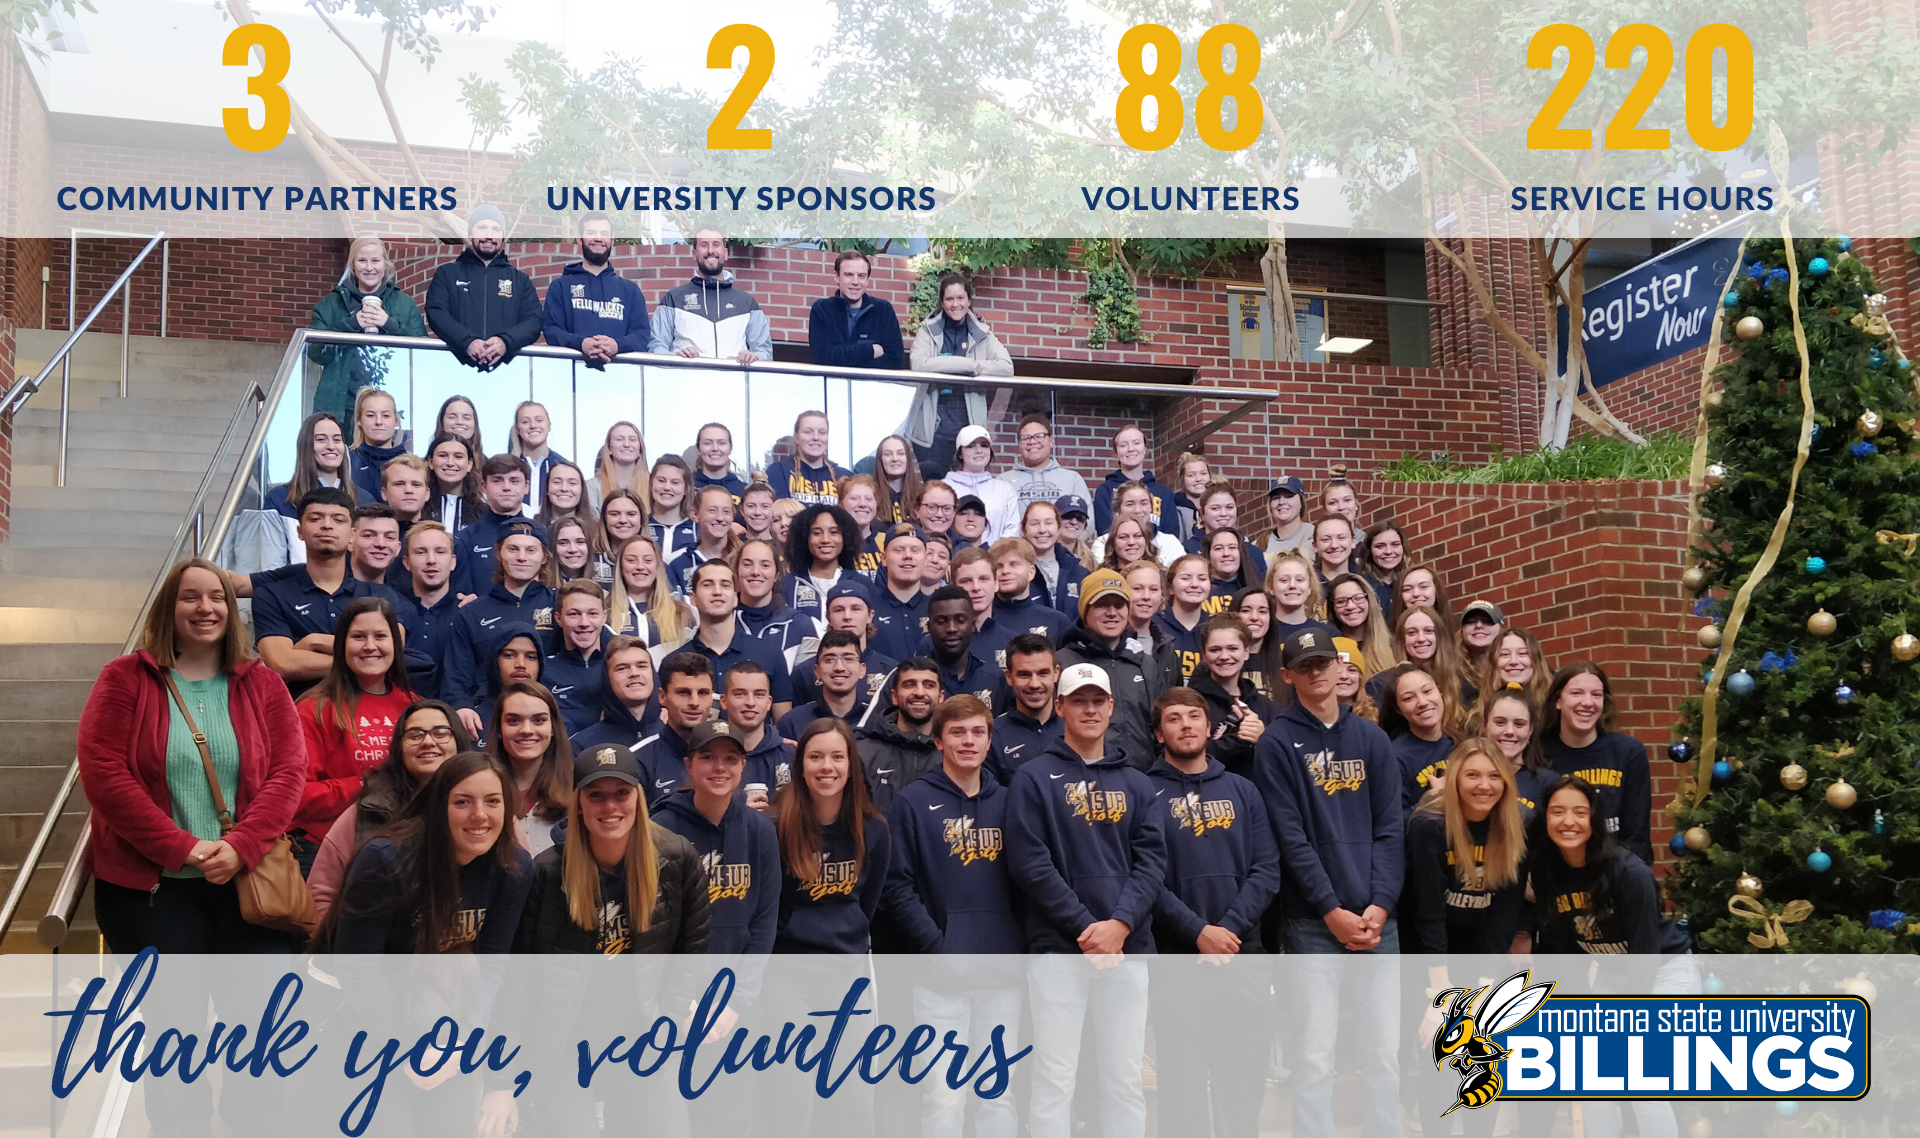 3 COMMUNITY PARTNERS 2 UNIVERSITY PARTNERS 88 VOLUNTEERS 220 SERVICE HOURS THANK YOU VOLUNTEERS